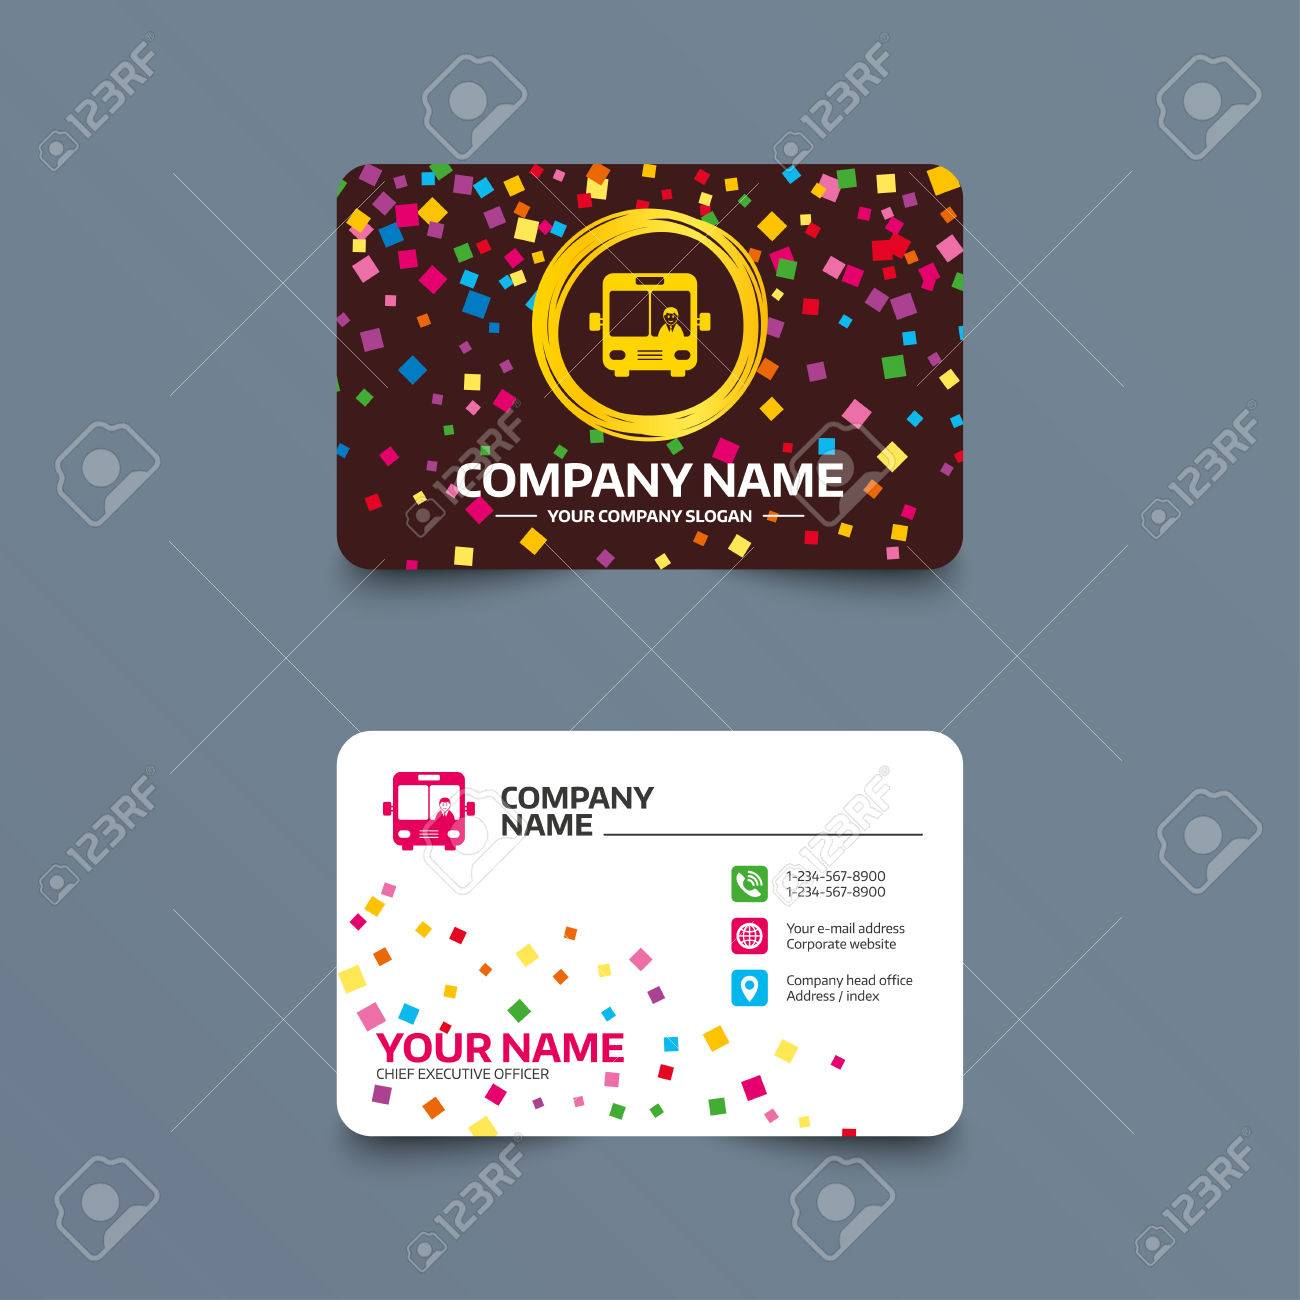 Business card template with confetti pieces bus sign icon public business card template with confetti pieces bus sign icon public transport with driver symbol accmission Choice Image